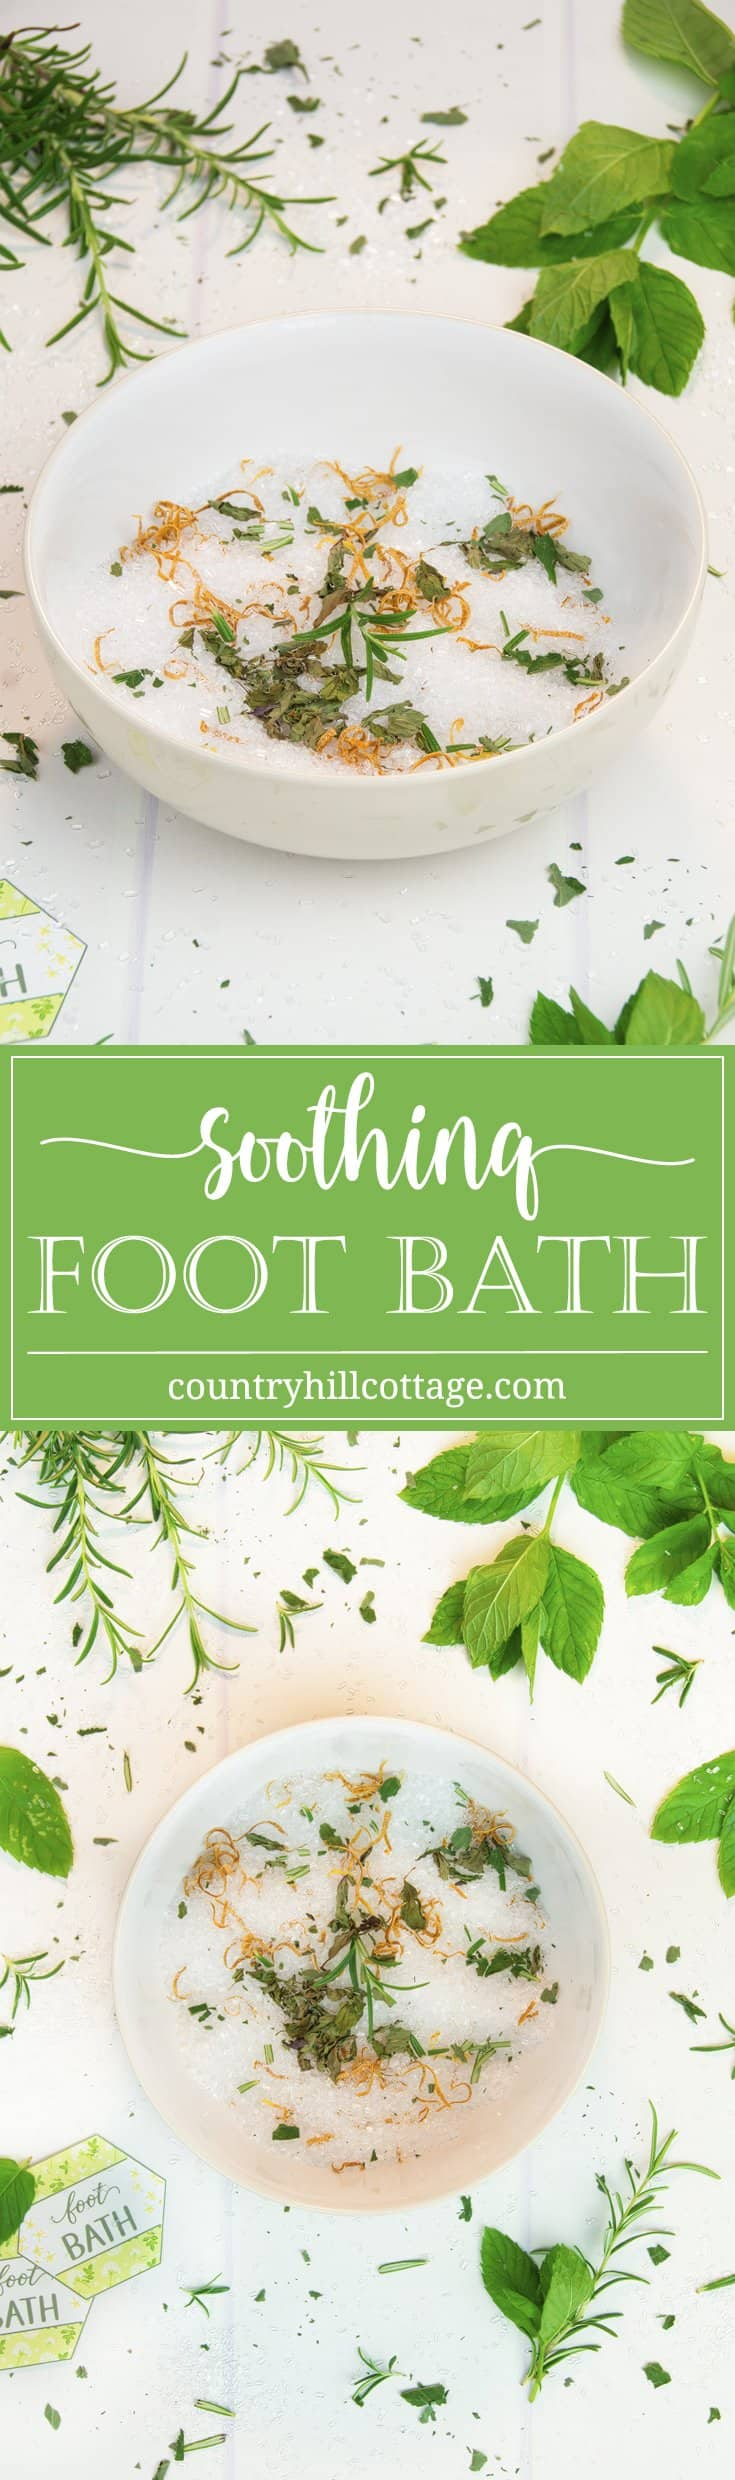 A homemade foot bath is a wonderful DIY spa experience! You can set up a foot bath in preparation for a mani-pedi, to soothe swollen feet on a hot summer day, or to soften foot calluses and corns. The base is made with Epsom salt, a magnesium sulfate compound known to reduce inflammation, relieve pain and eliminate odour. Tea tree oil helps to soften calluses, while peppermint oil and rosemary soothe cracked, dry skin. #footbath #epsomsalt #essentialoils #beautyrecipe | countryhillcottage.com